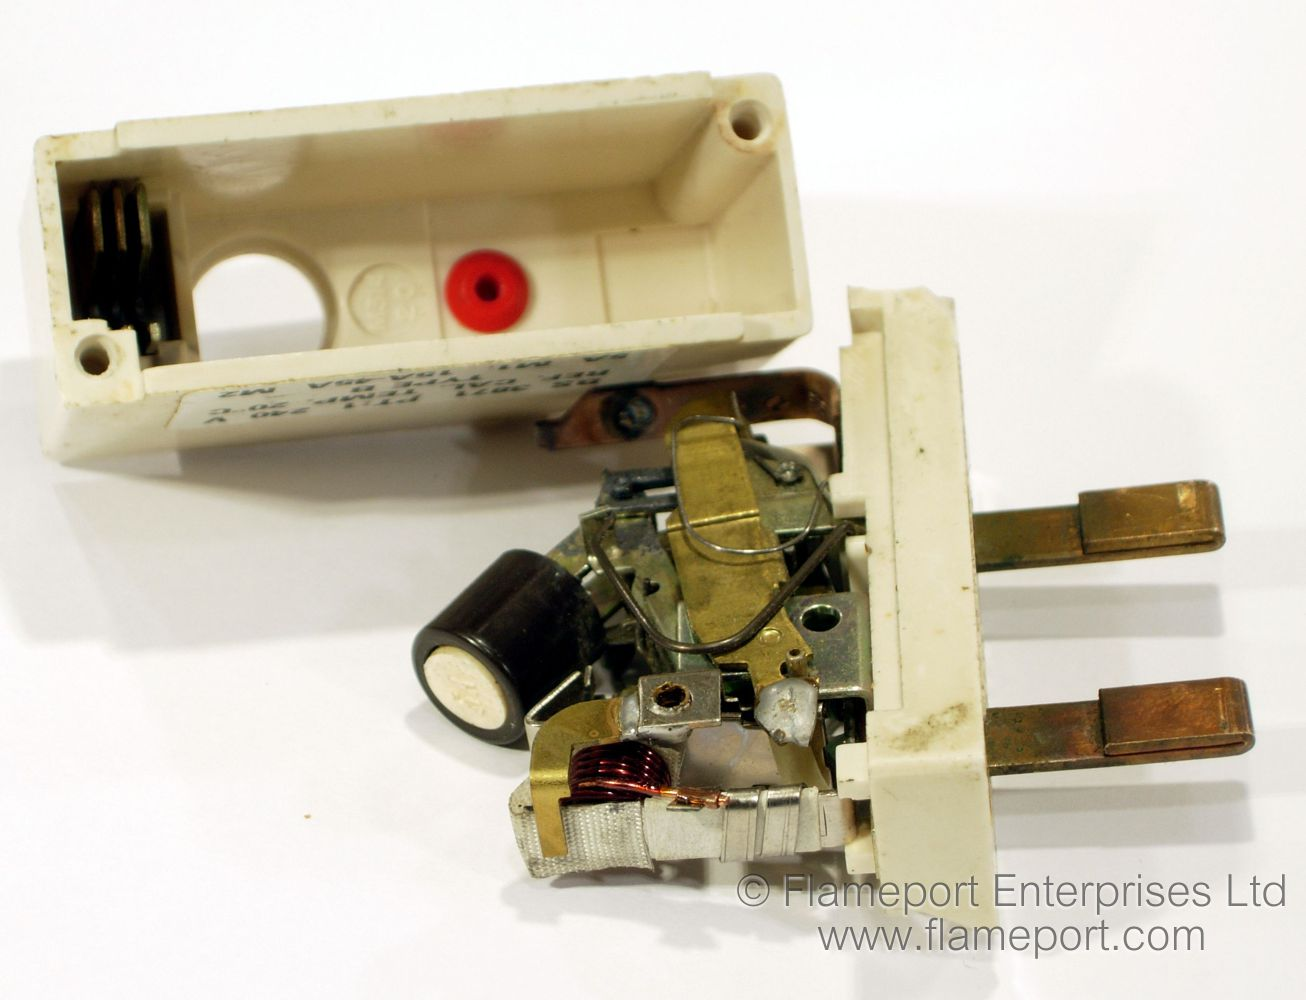 These Circuit Breakers Are A Direct Replacement For The Rewireable